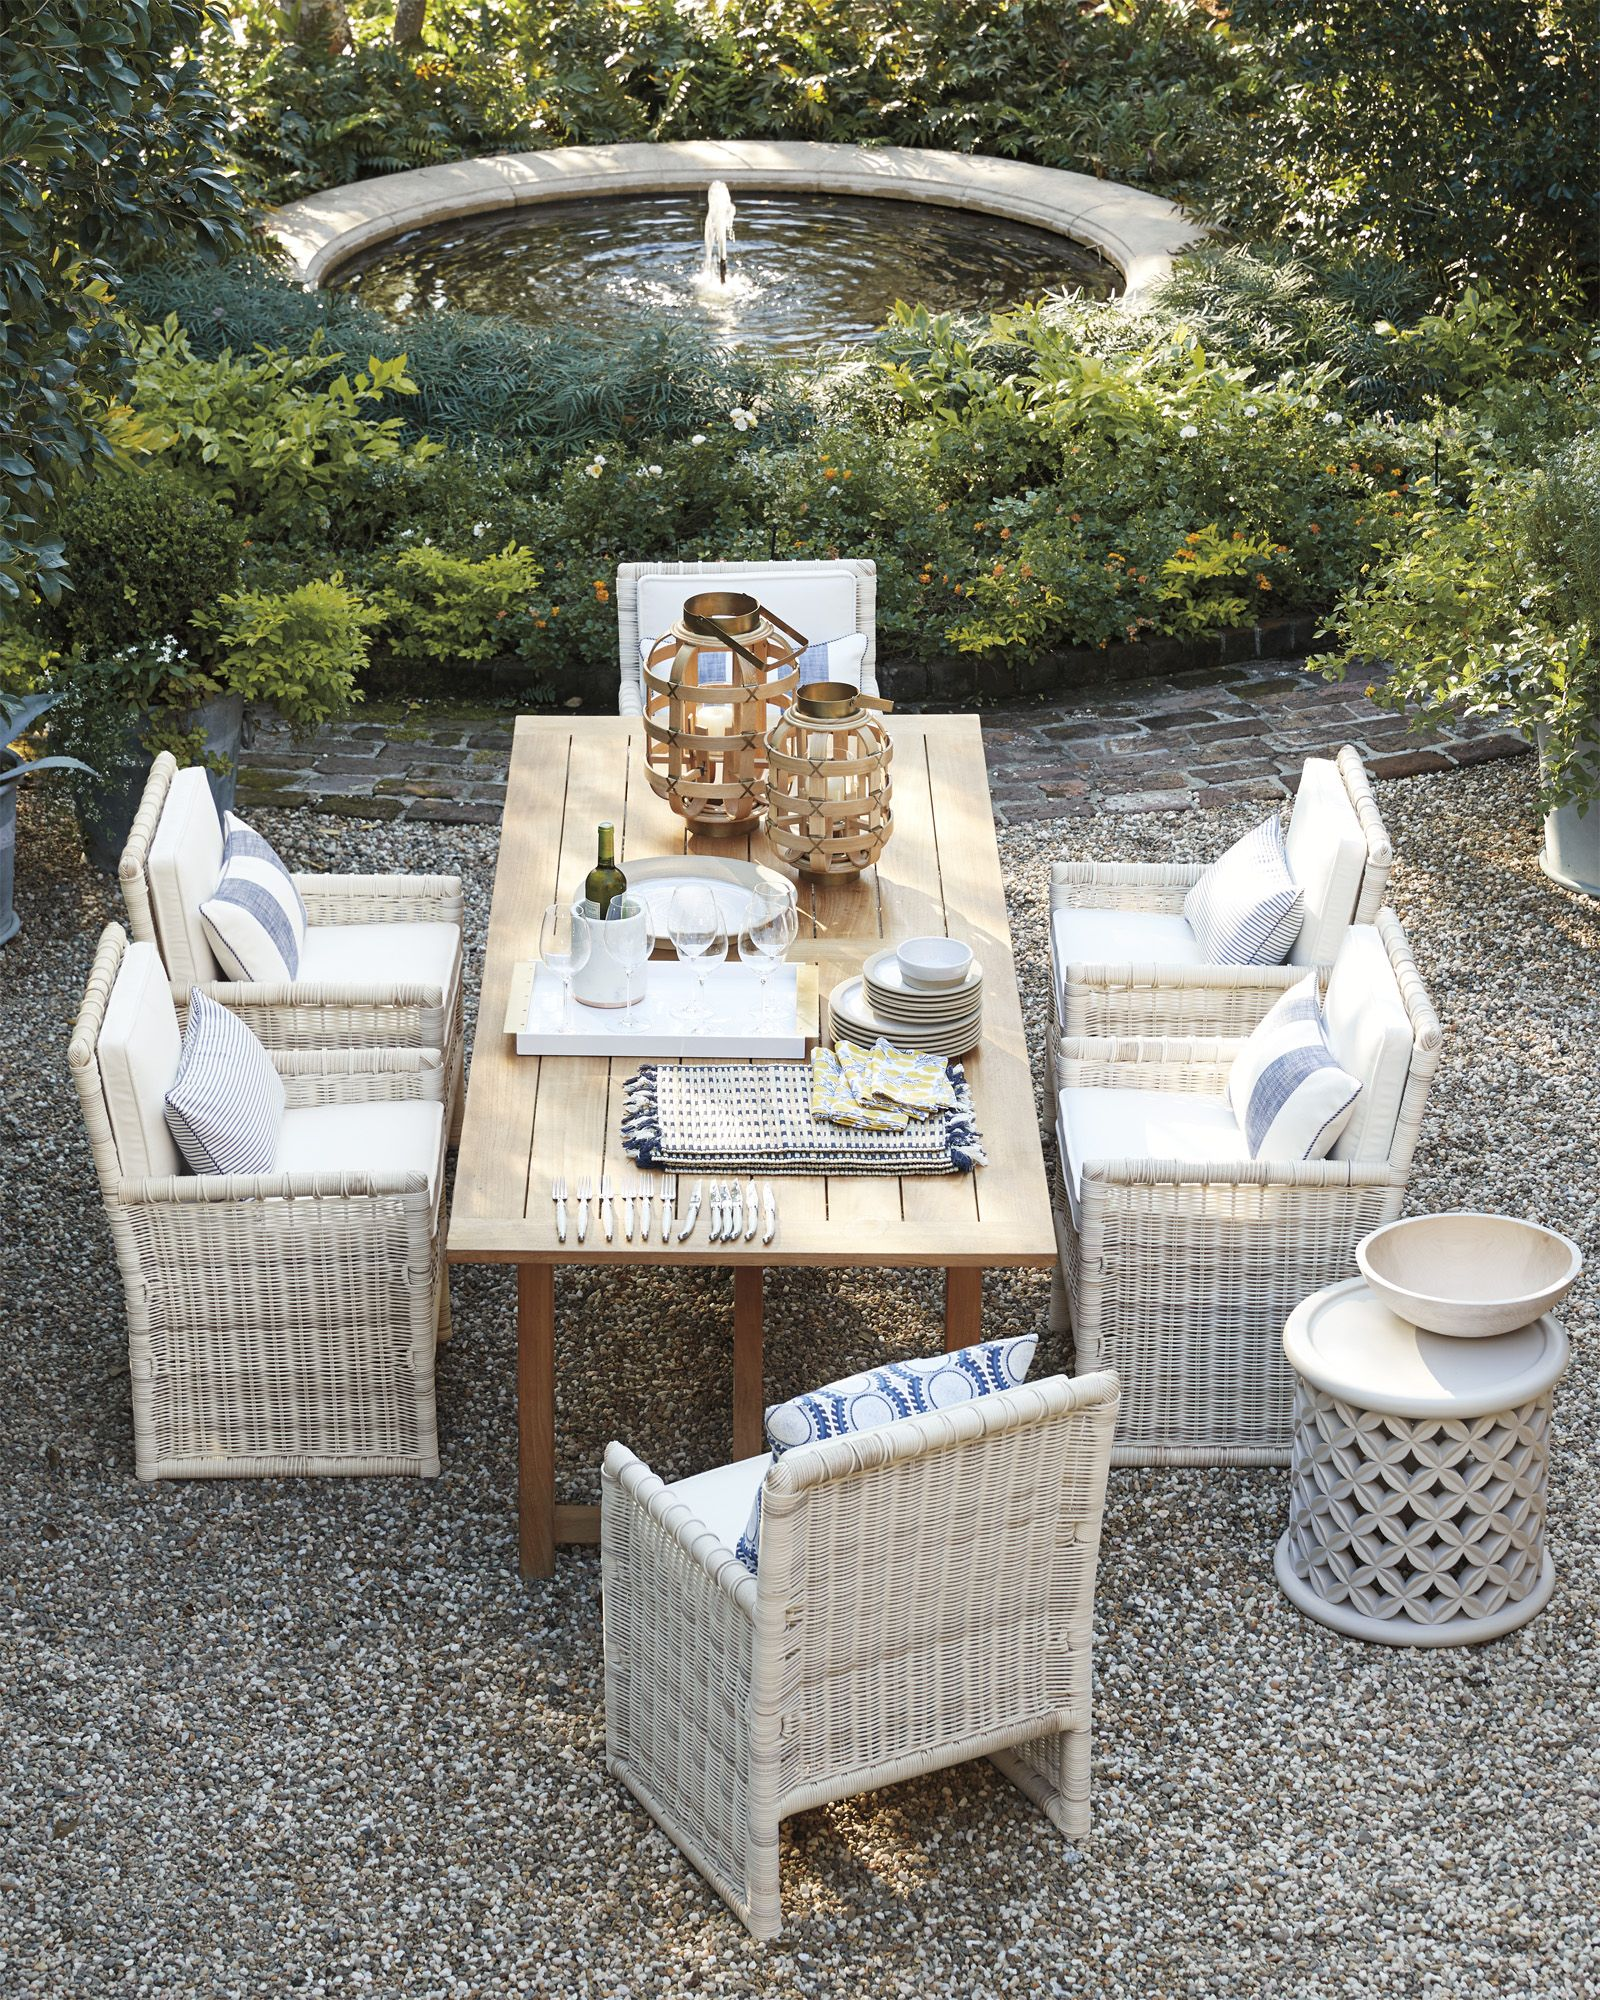 Outdoor Entertaining Year Round The California Way Pacifica Dining Chair With Cushion Via Serena Lily